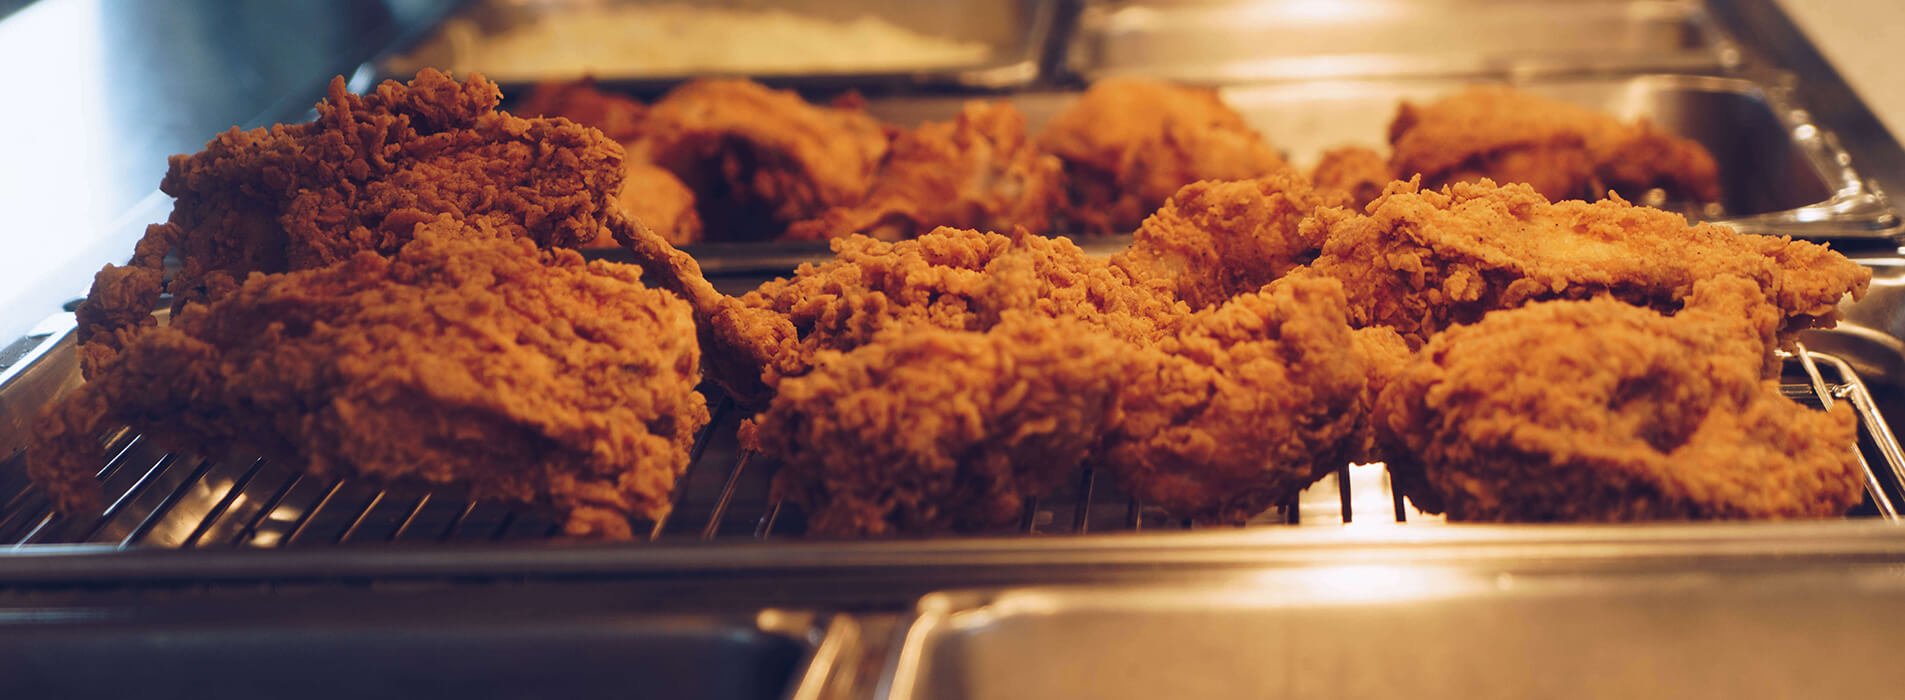 Fried chicken on a heated tray